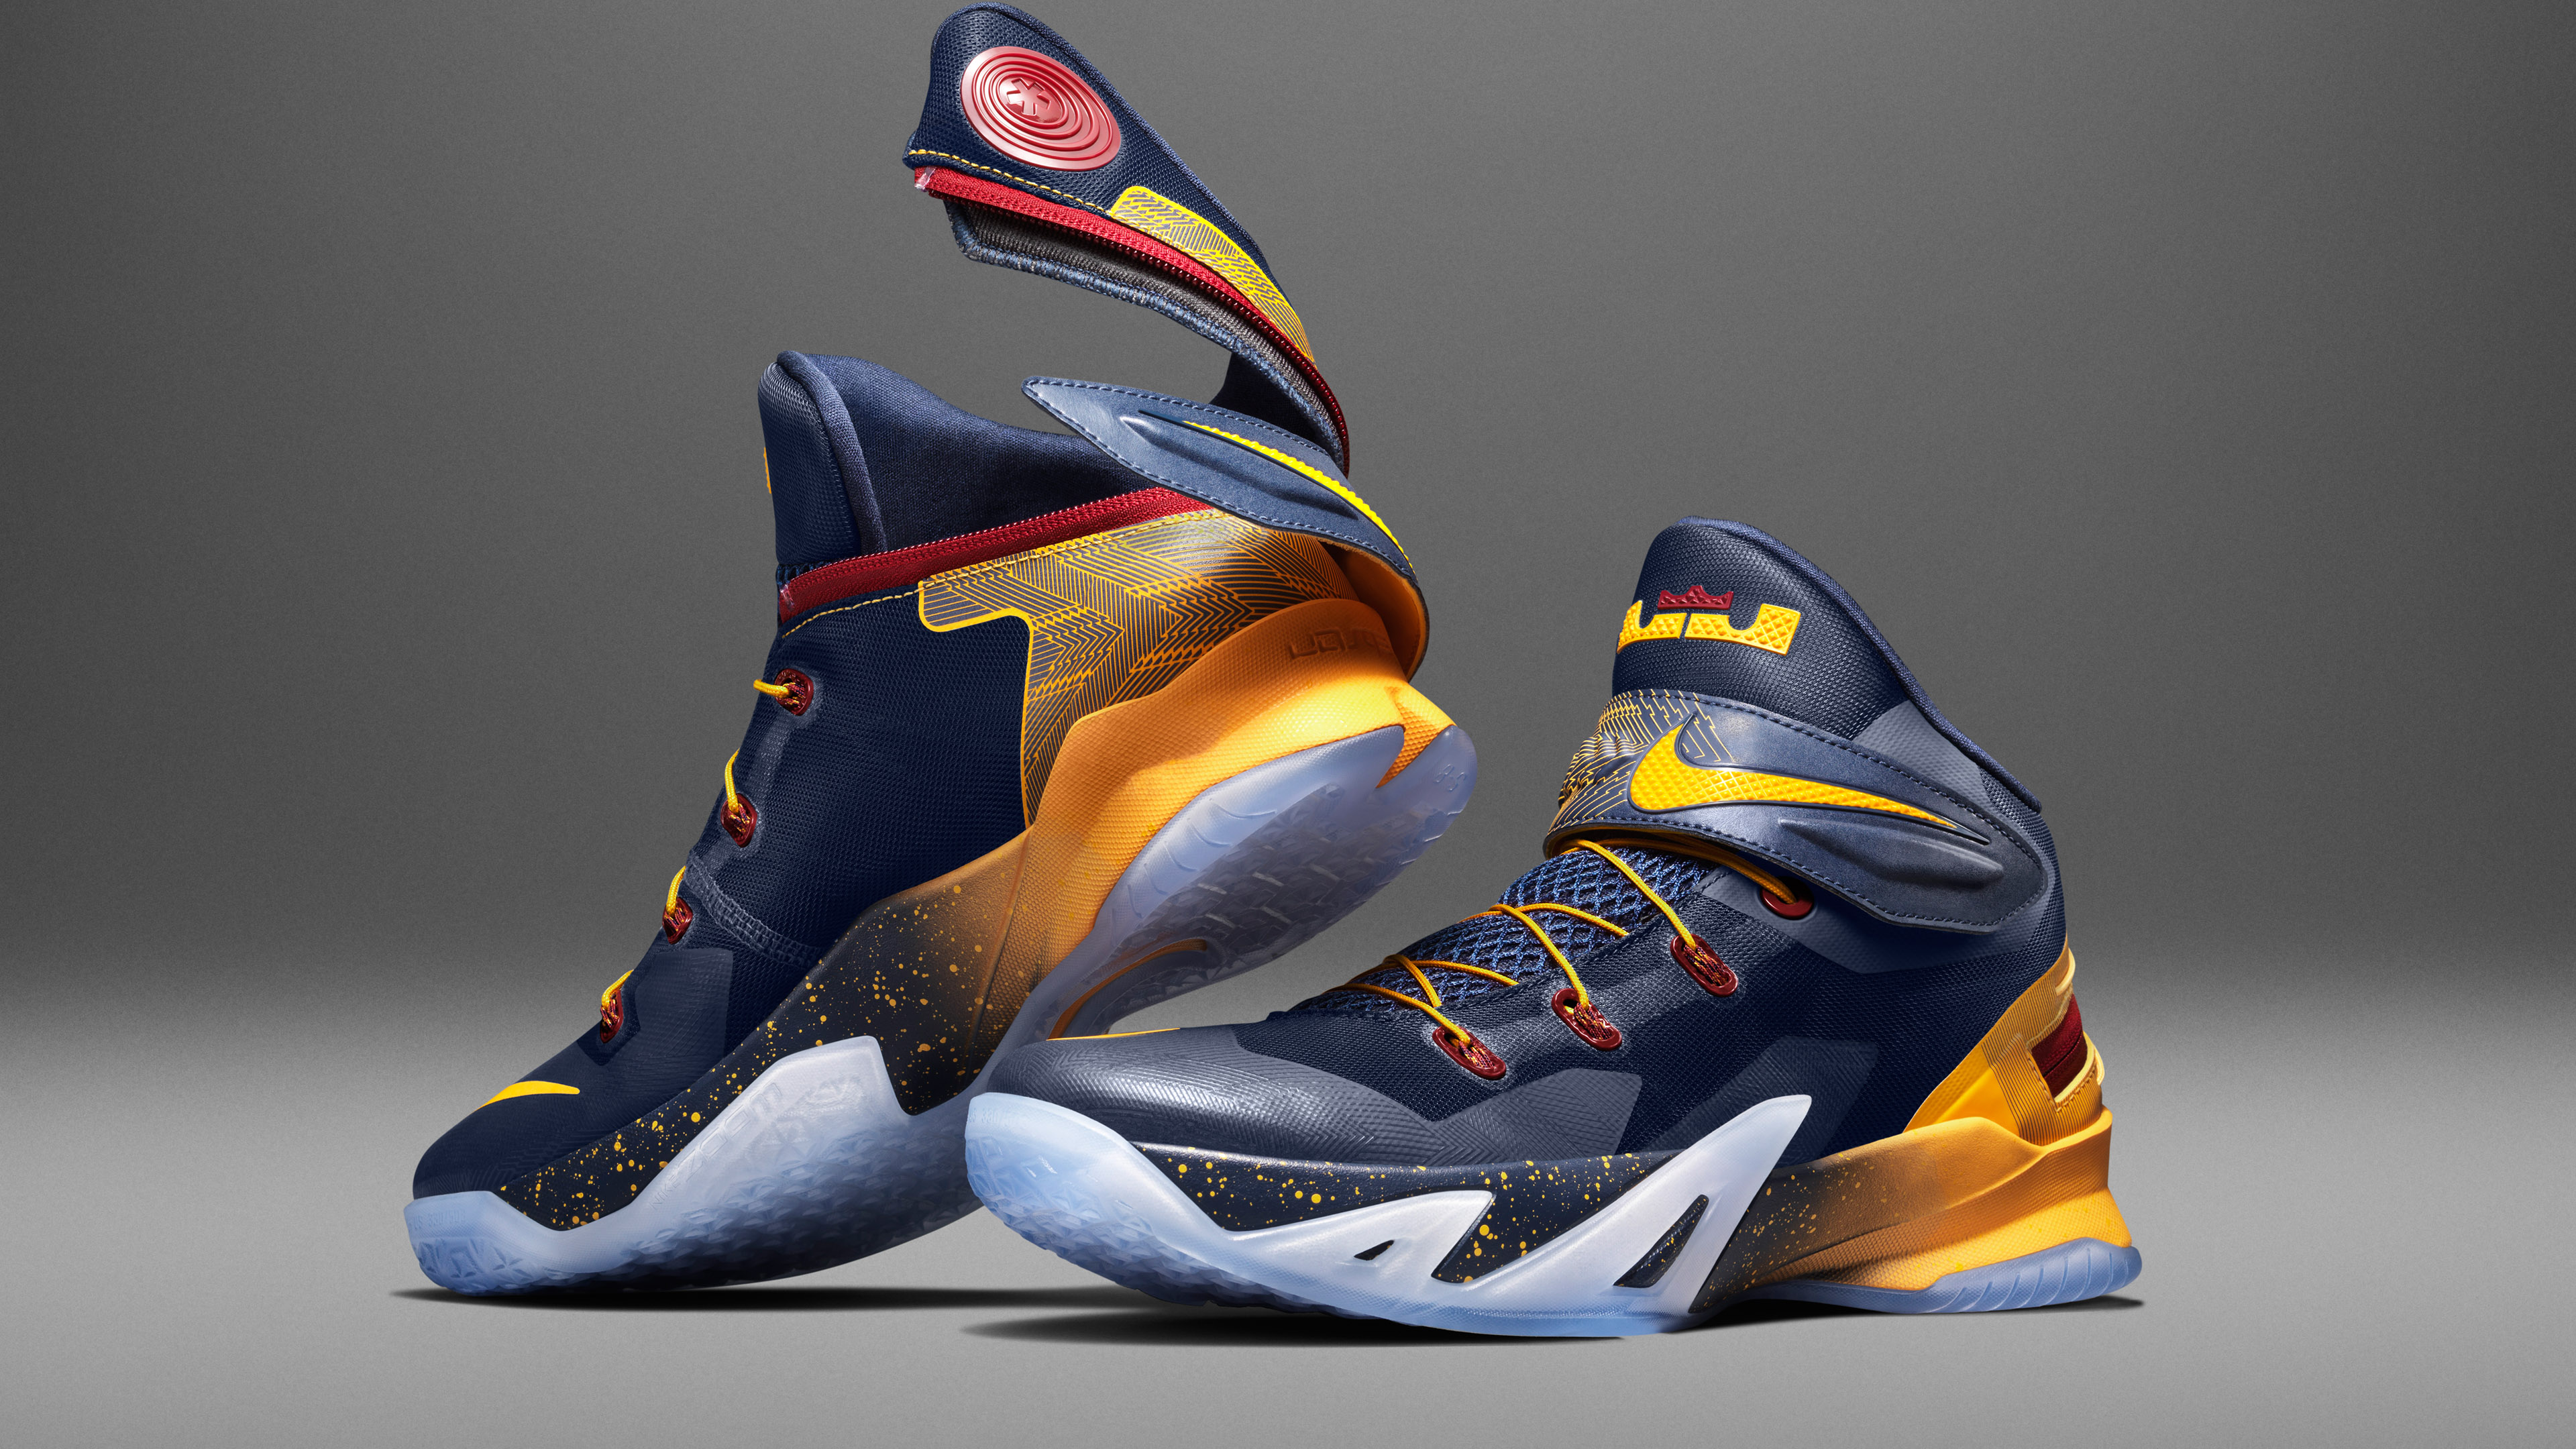 Nike Basketball Shoe Wallpaper With The Flyease 16 Of 17 Pics